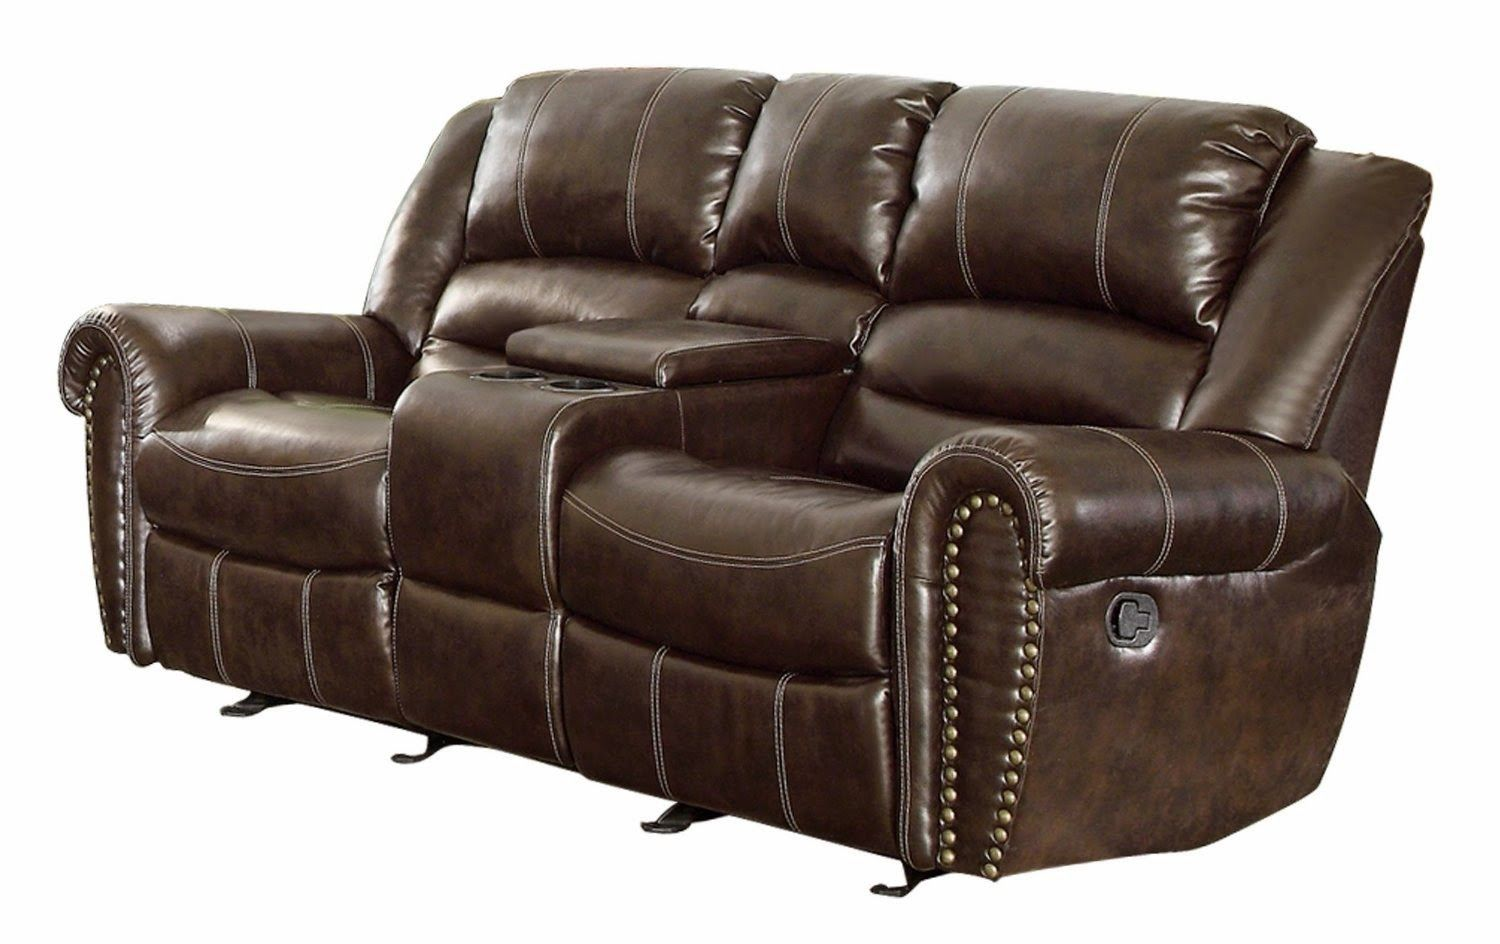 Sofa:Sofa Bed Playroom Leather Sofa Recliner 2 Seater Leather Recliner Sofa  Sale Glider Leather